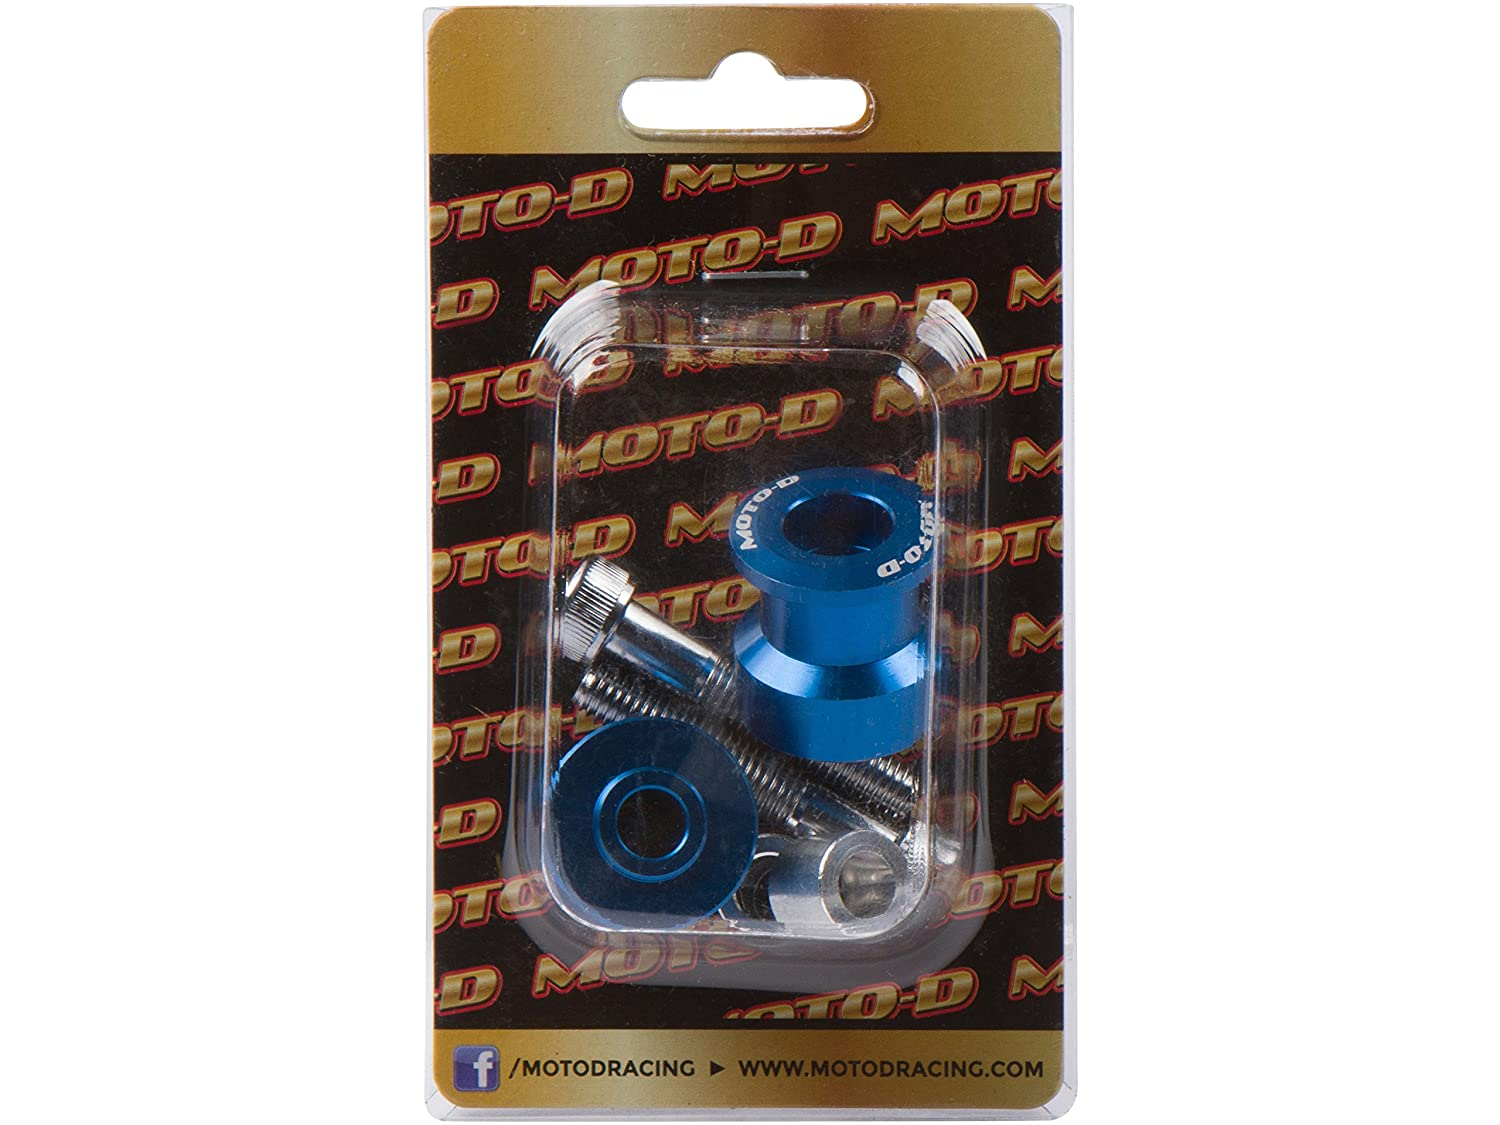 MOTO-D 8MM Swingarm Spools Blue MOTO-D Racing